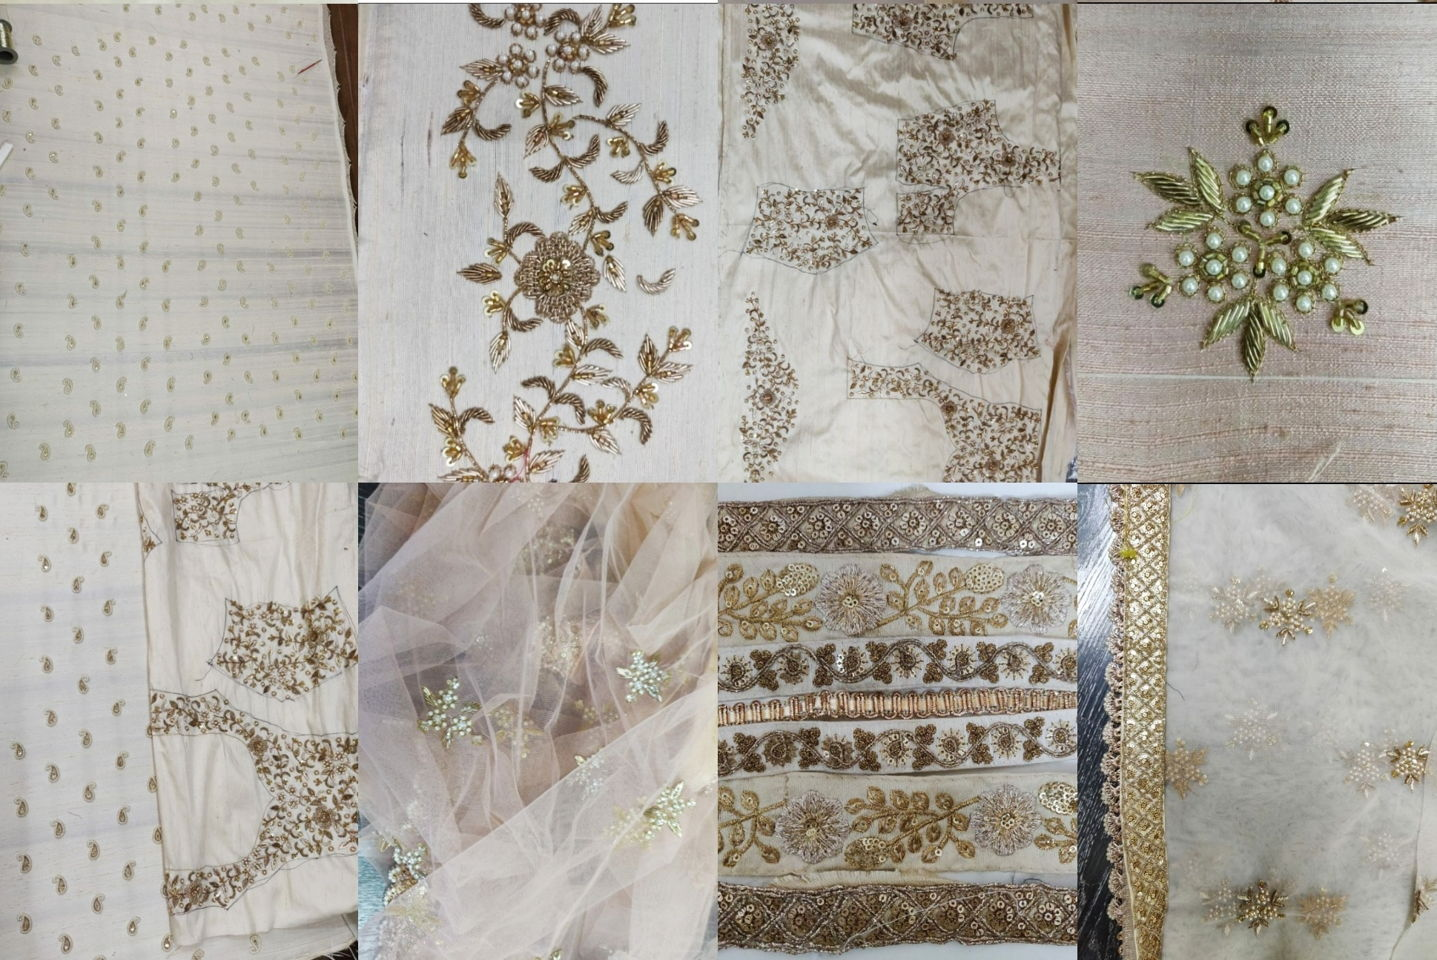 Emb process collage - Making of Niti's Bridal Outfit